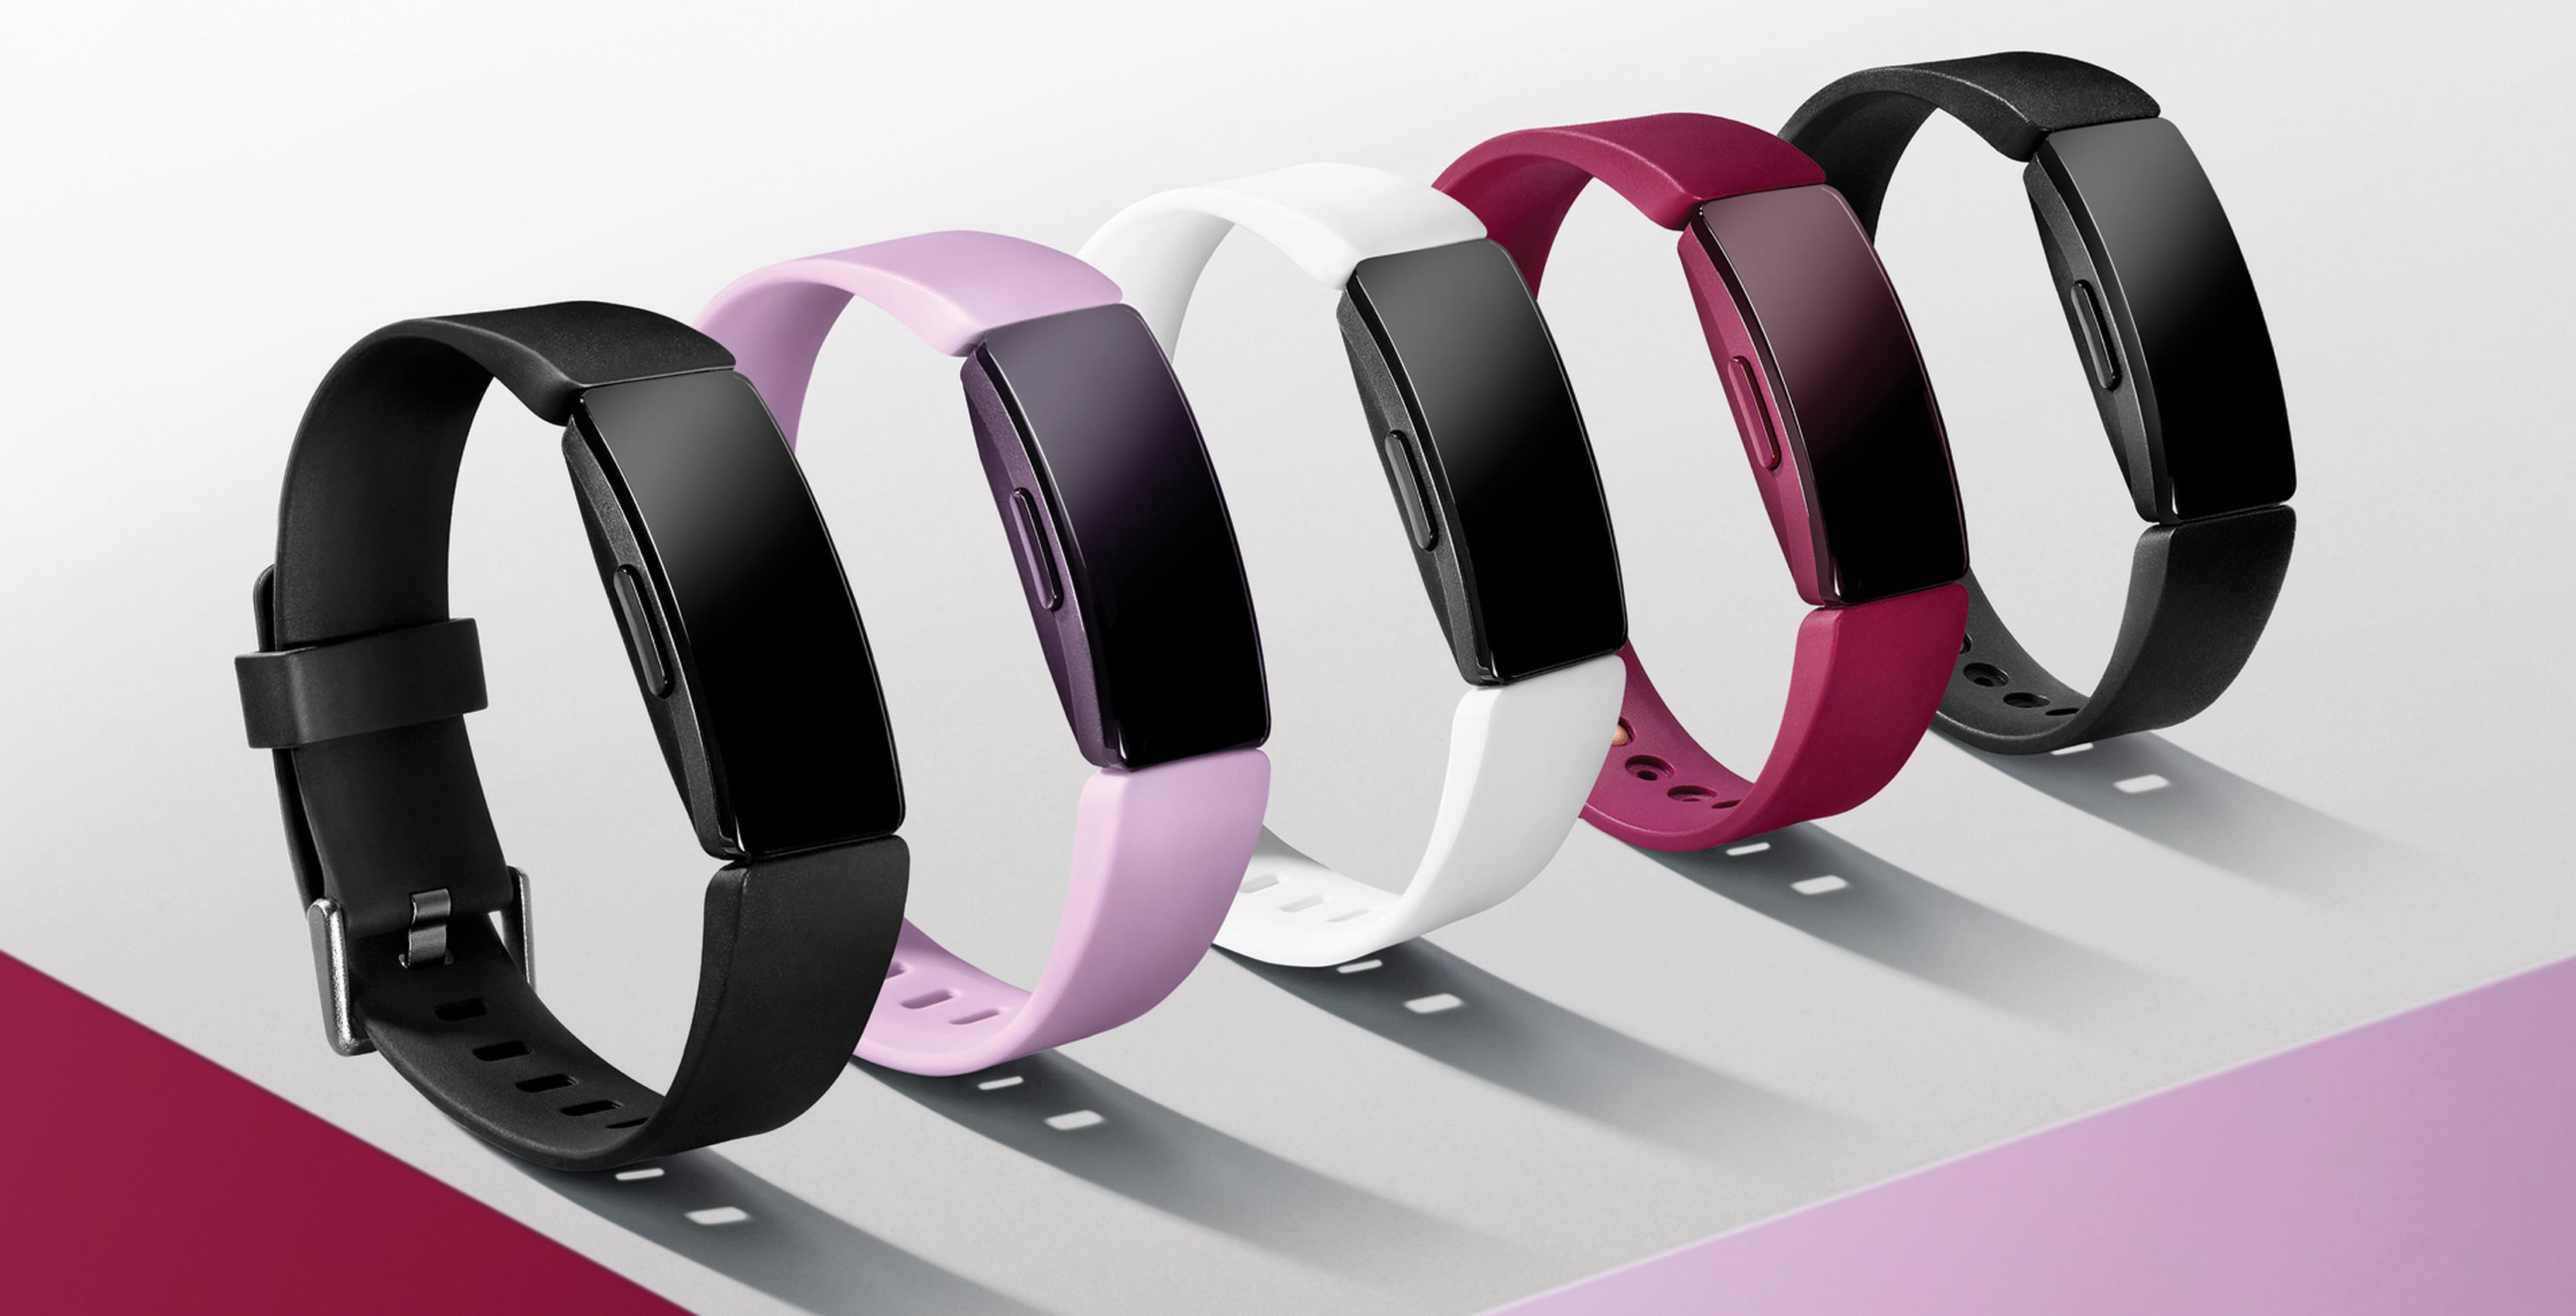 Fitbit's new Inspire lineup of affordable trackers